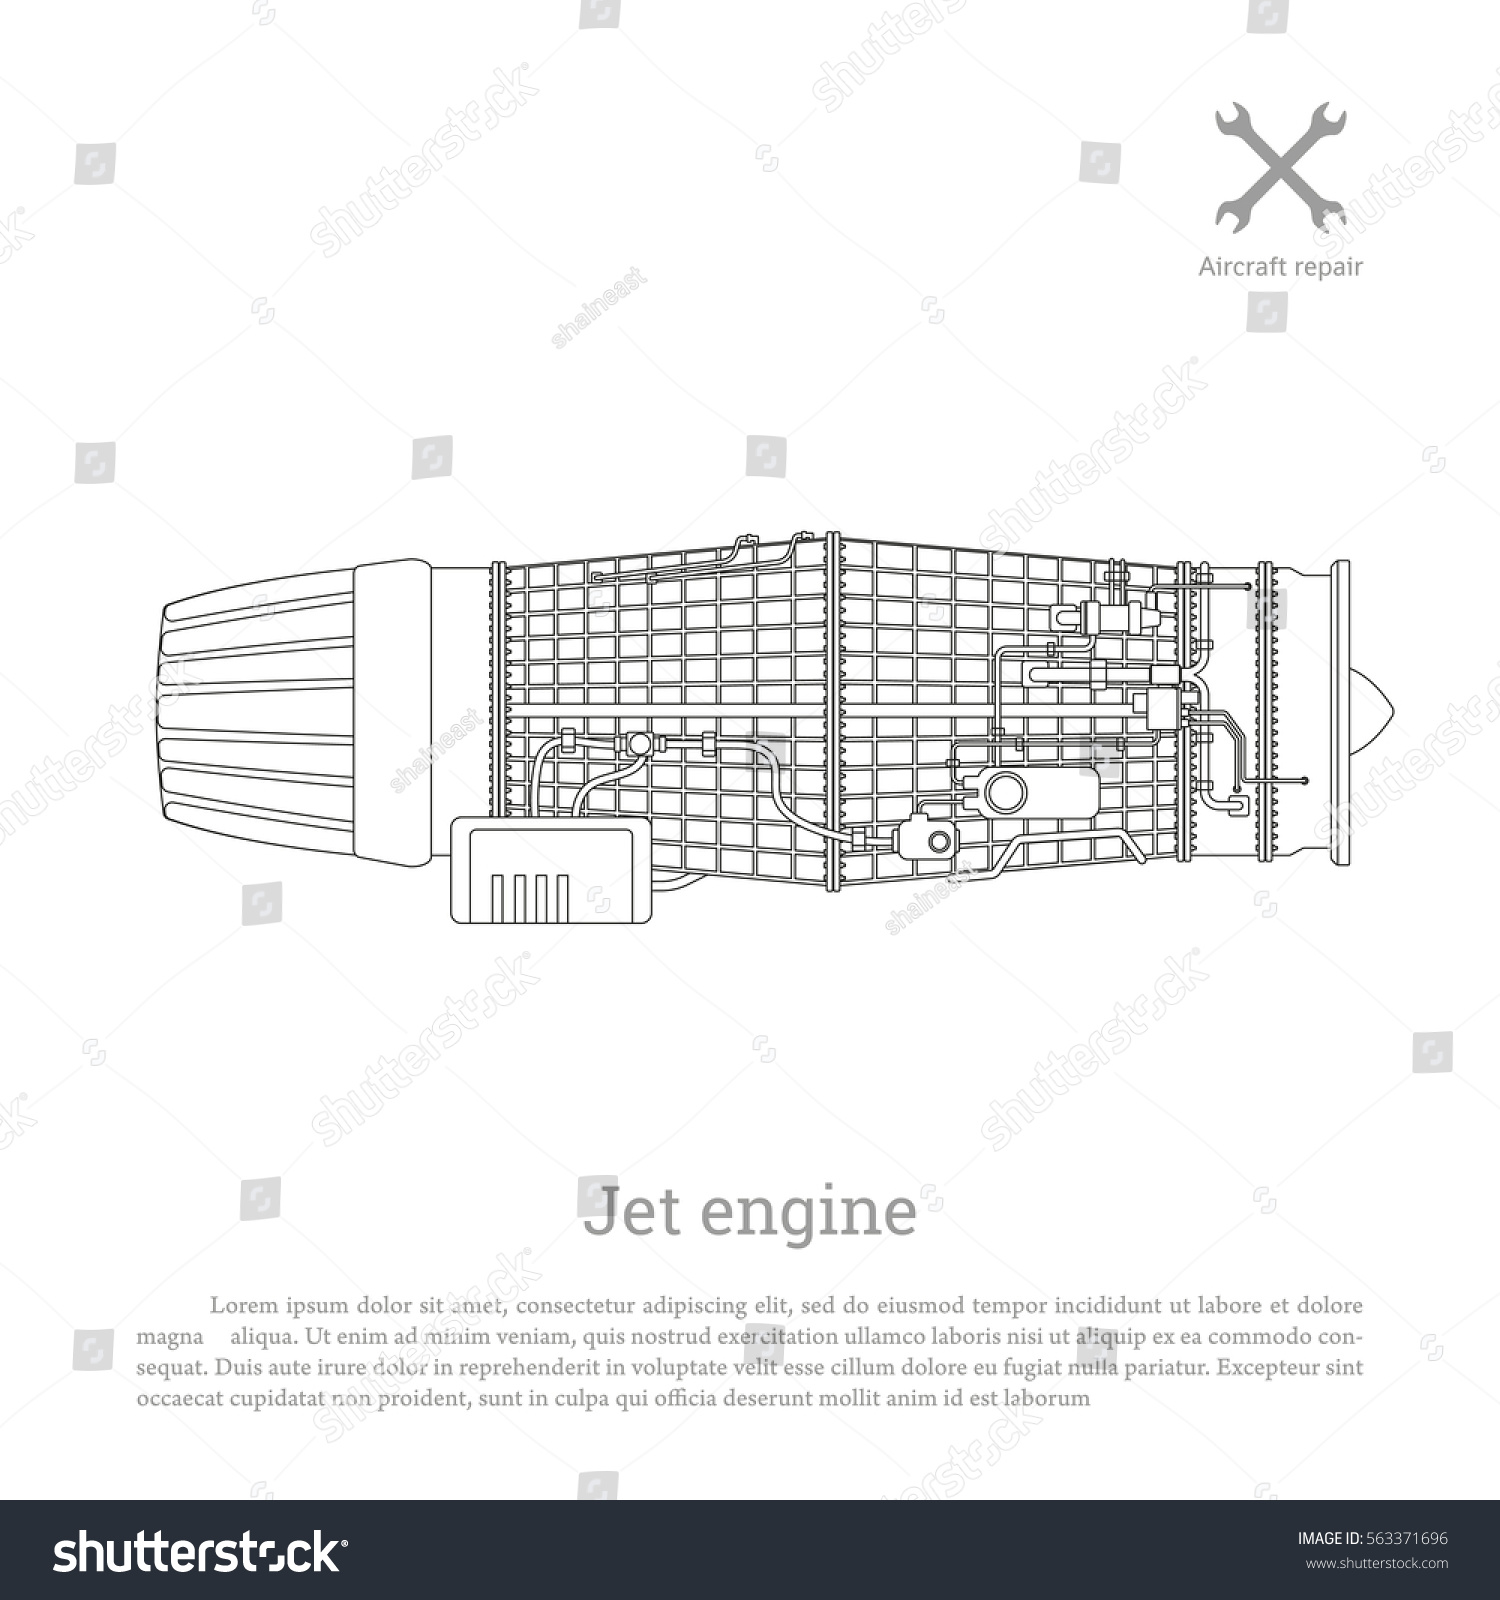 Jet engine outline style part aircraft stock vector 563371696 jet engine in a outline style part of the aircraft side view vector pooptronica Gallery